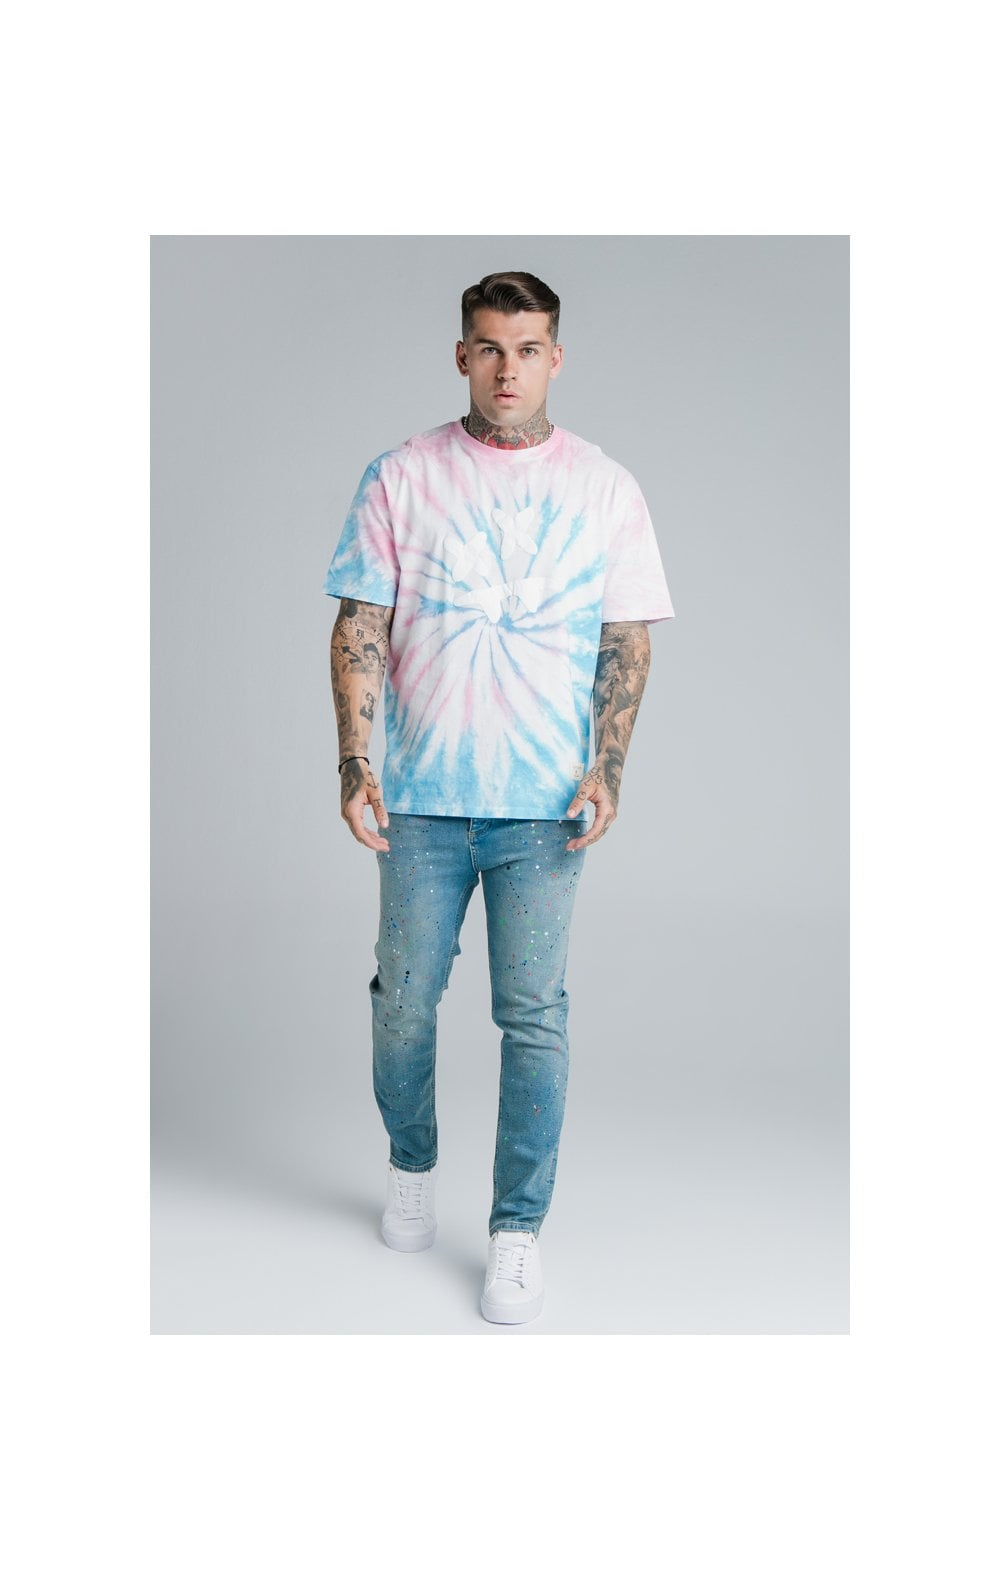 Charger l'image dans la galerie, SikSilk X Steve Aoki S/S Oversize Essential Tee – Baby Pink & Blue Tie Dye (4)